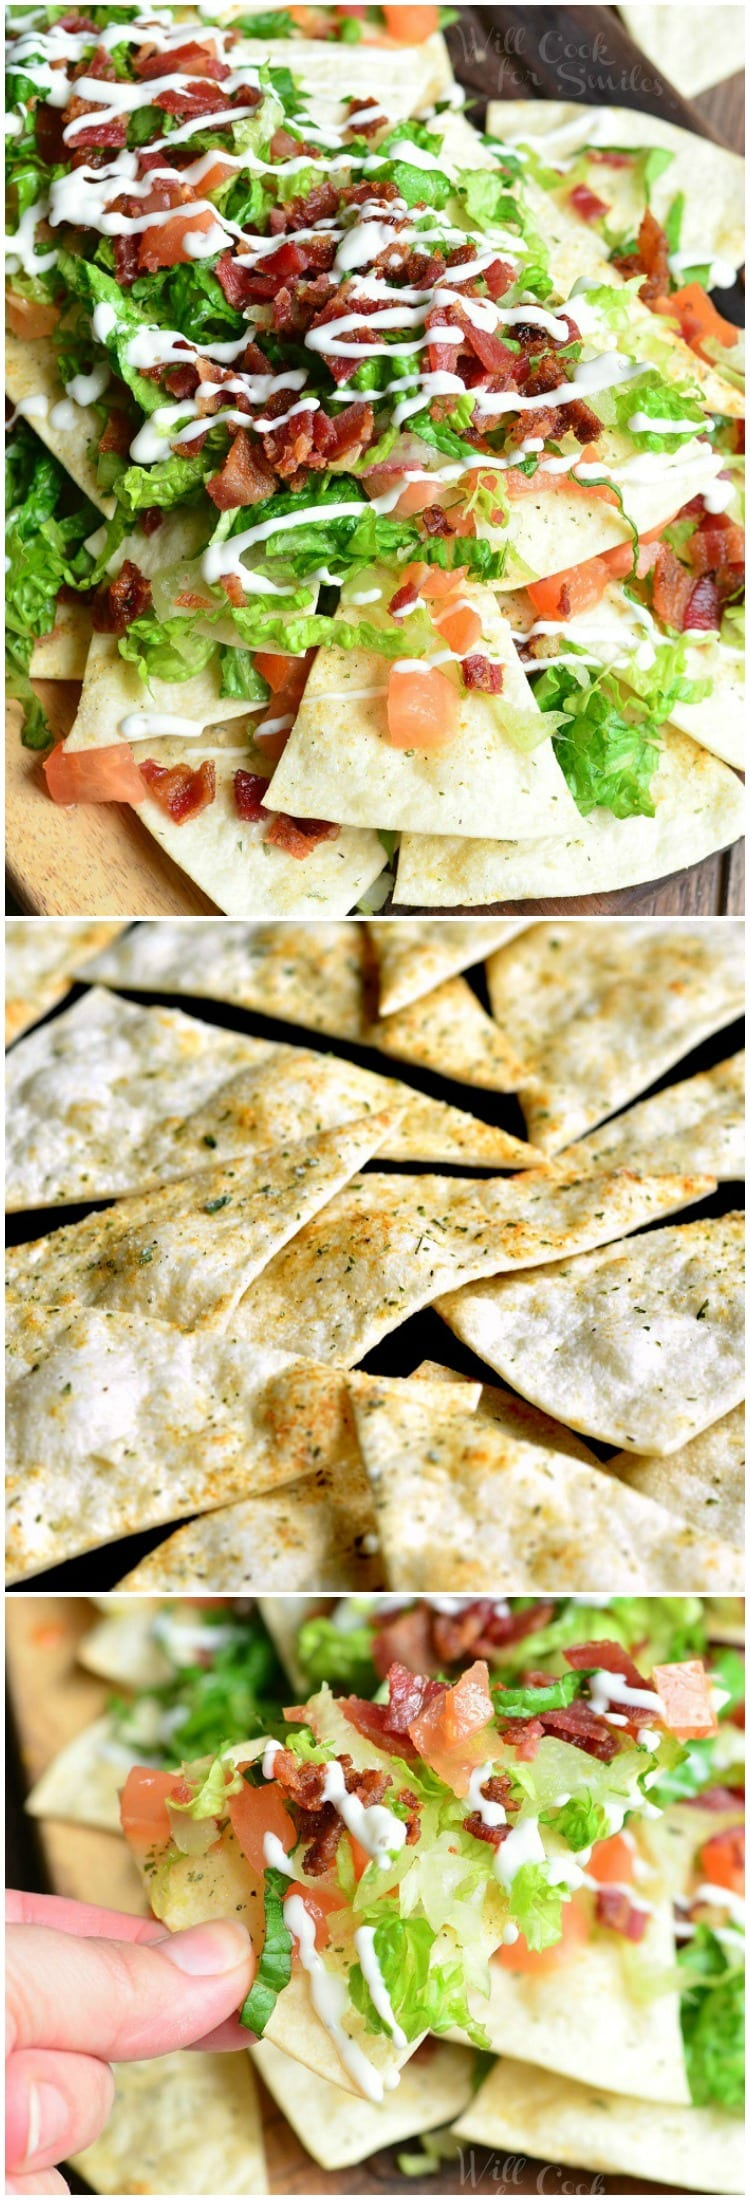 BLT Nachos with Homemade Baked Cool Ranch Tortilla Chips | from willcookforsmiles.com #appetizer #partyfood